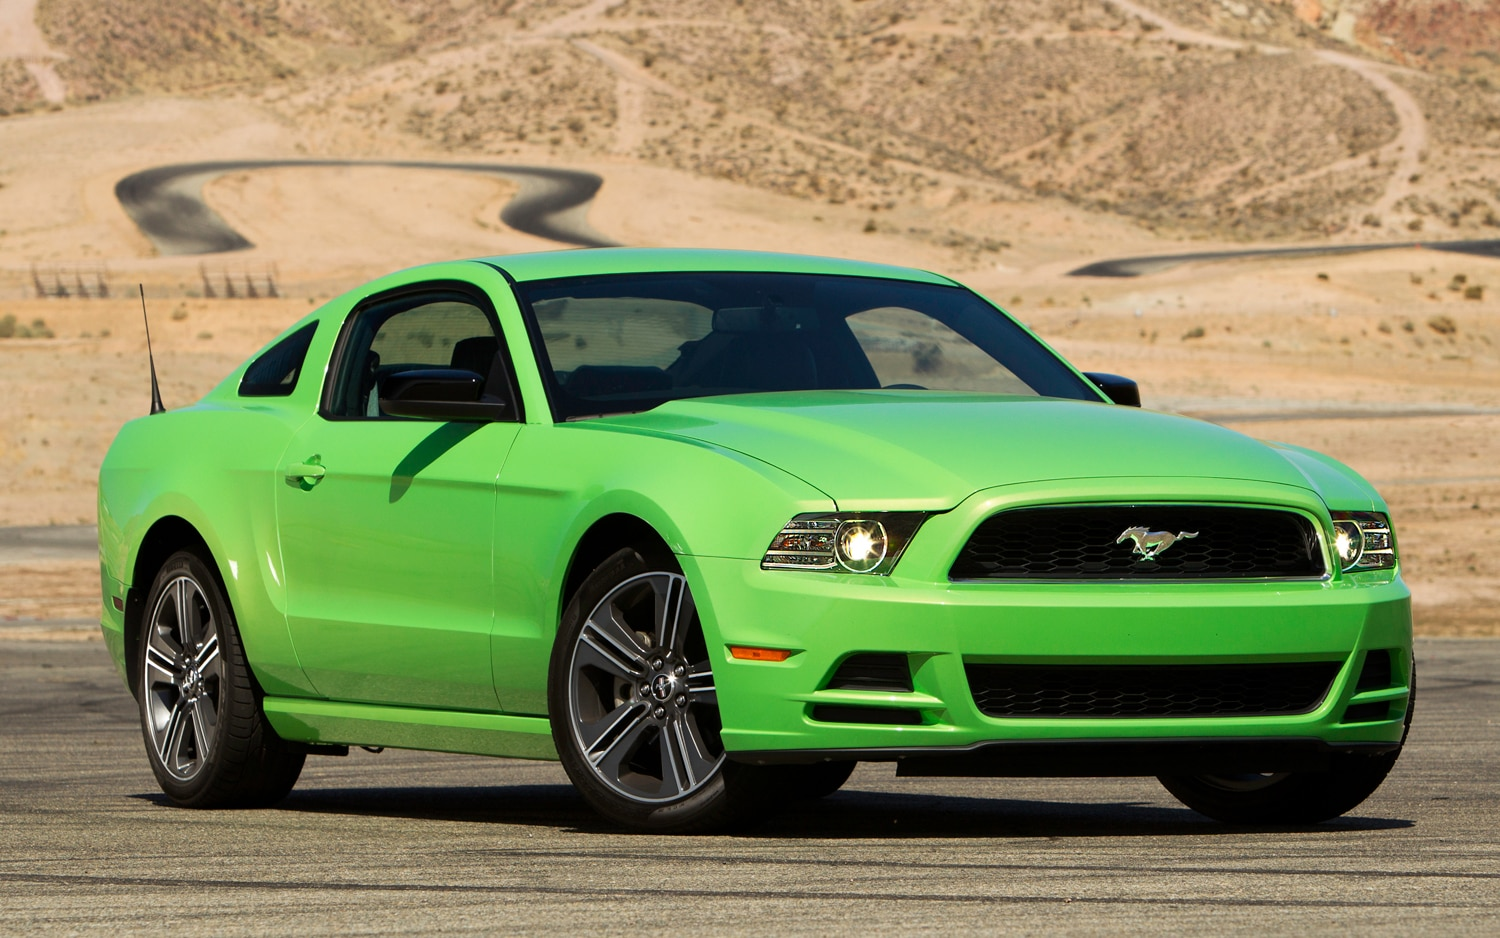 evaluation of the mustang About as popular a household automotive name as you'll find, the ford mustang is the longest surviving of the affordable breed of classic american muscle cars.